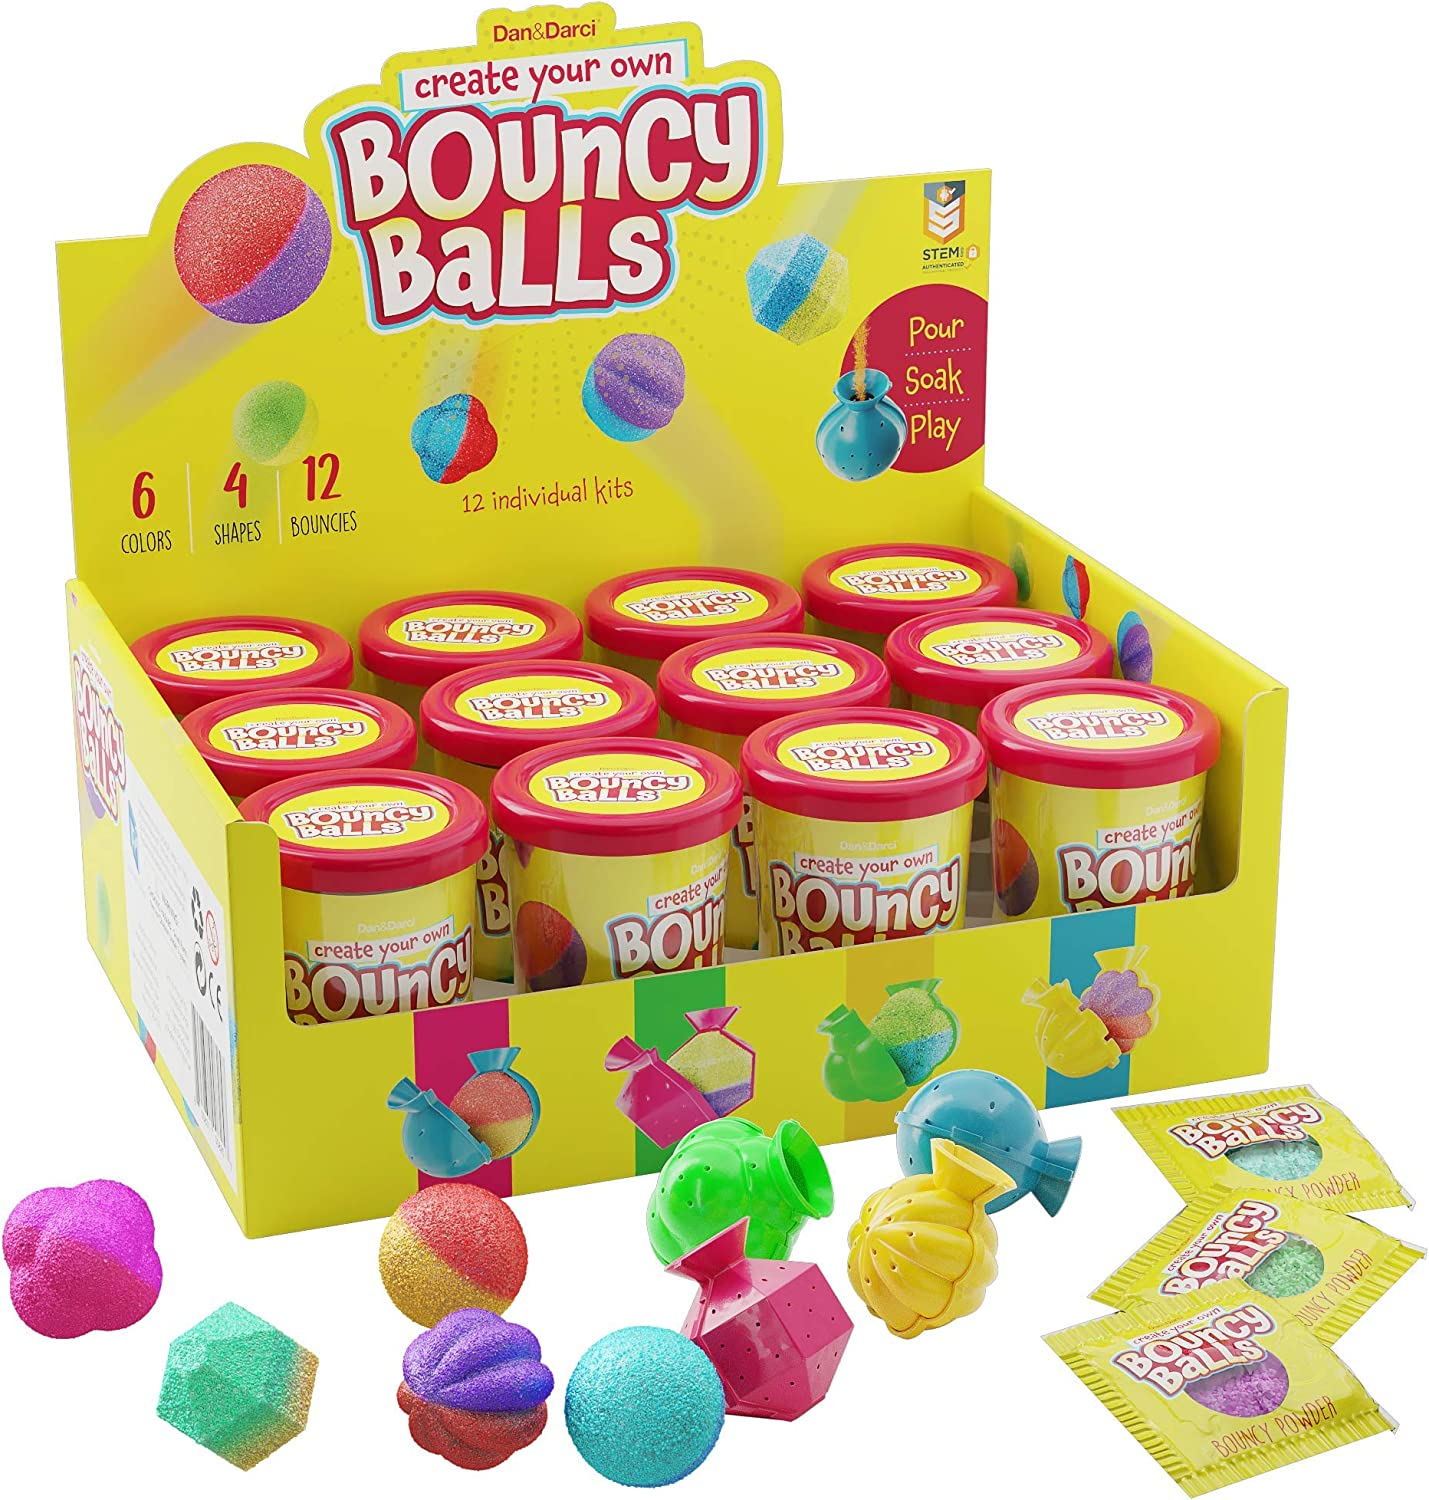 Make Your Own Bouncy Ball Kit - 12 Individual Kits - Science Party Favors - Cool Birthday Party Activities for Kids - Create 12 Crystal Balls - Fun DIY Arts and Crafts for Kids - STEM Projects